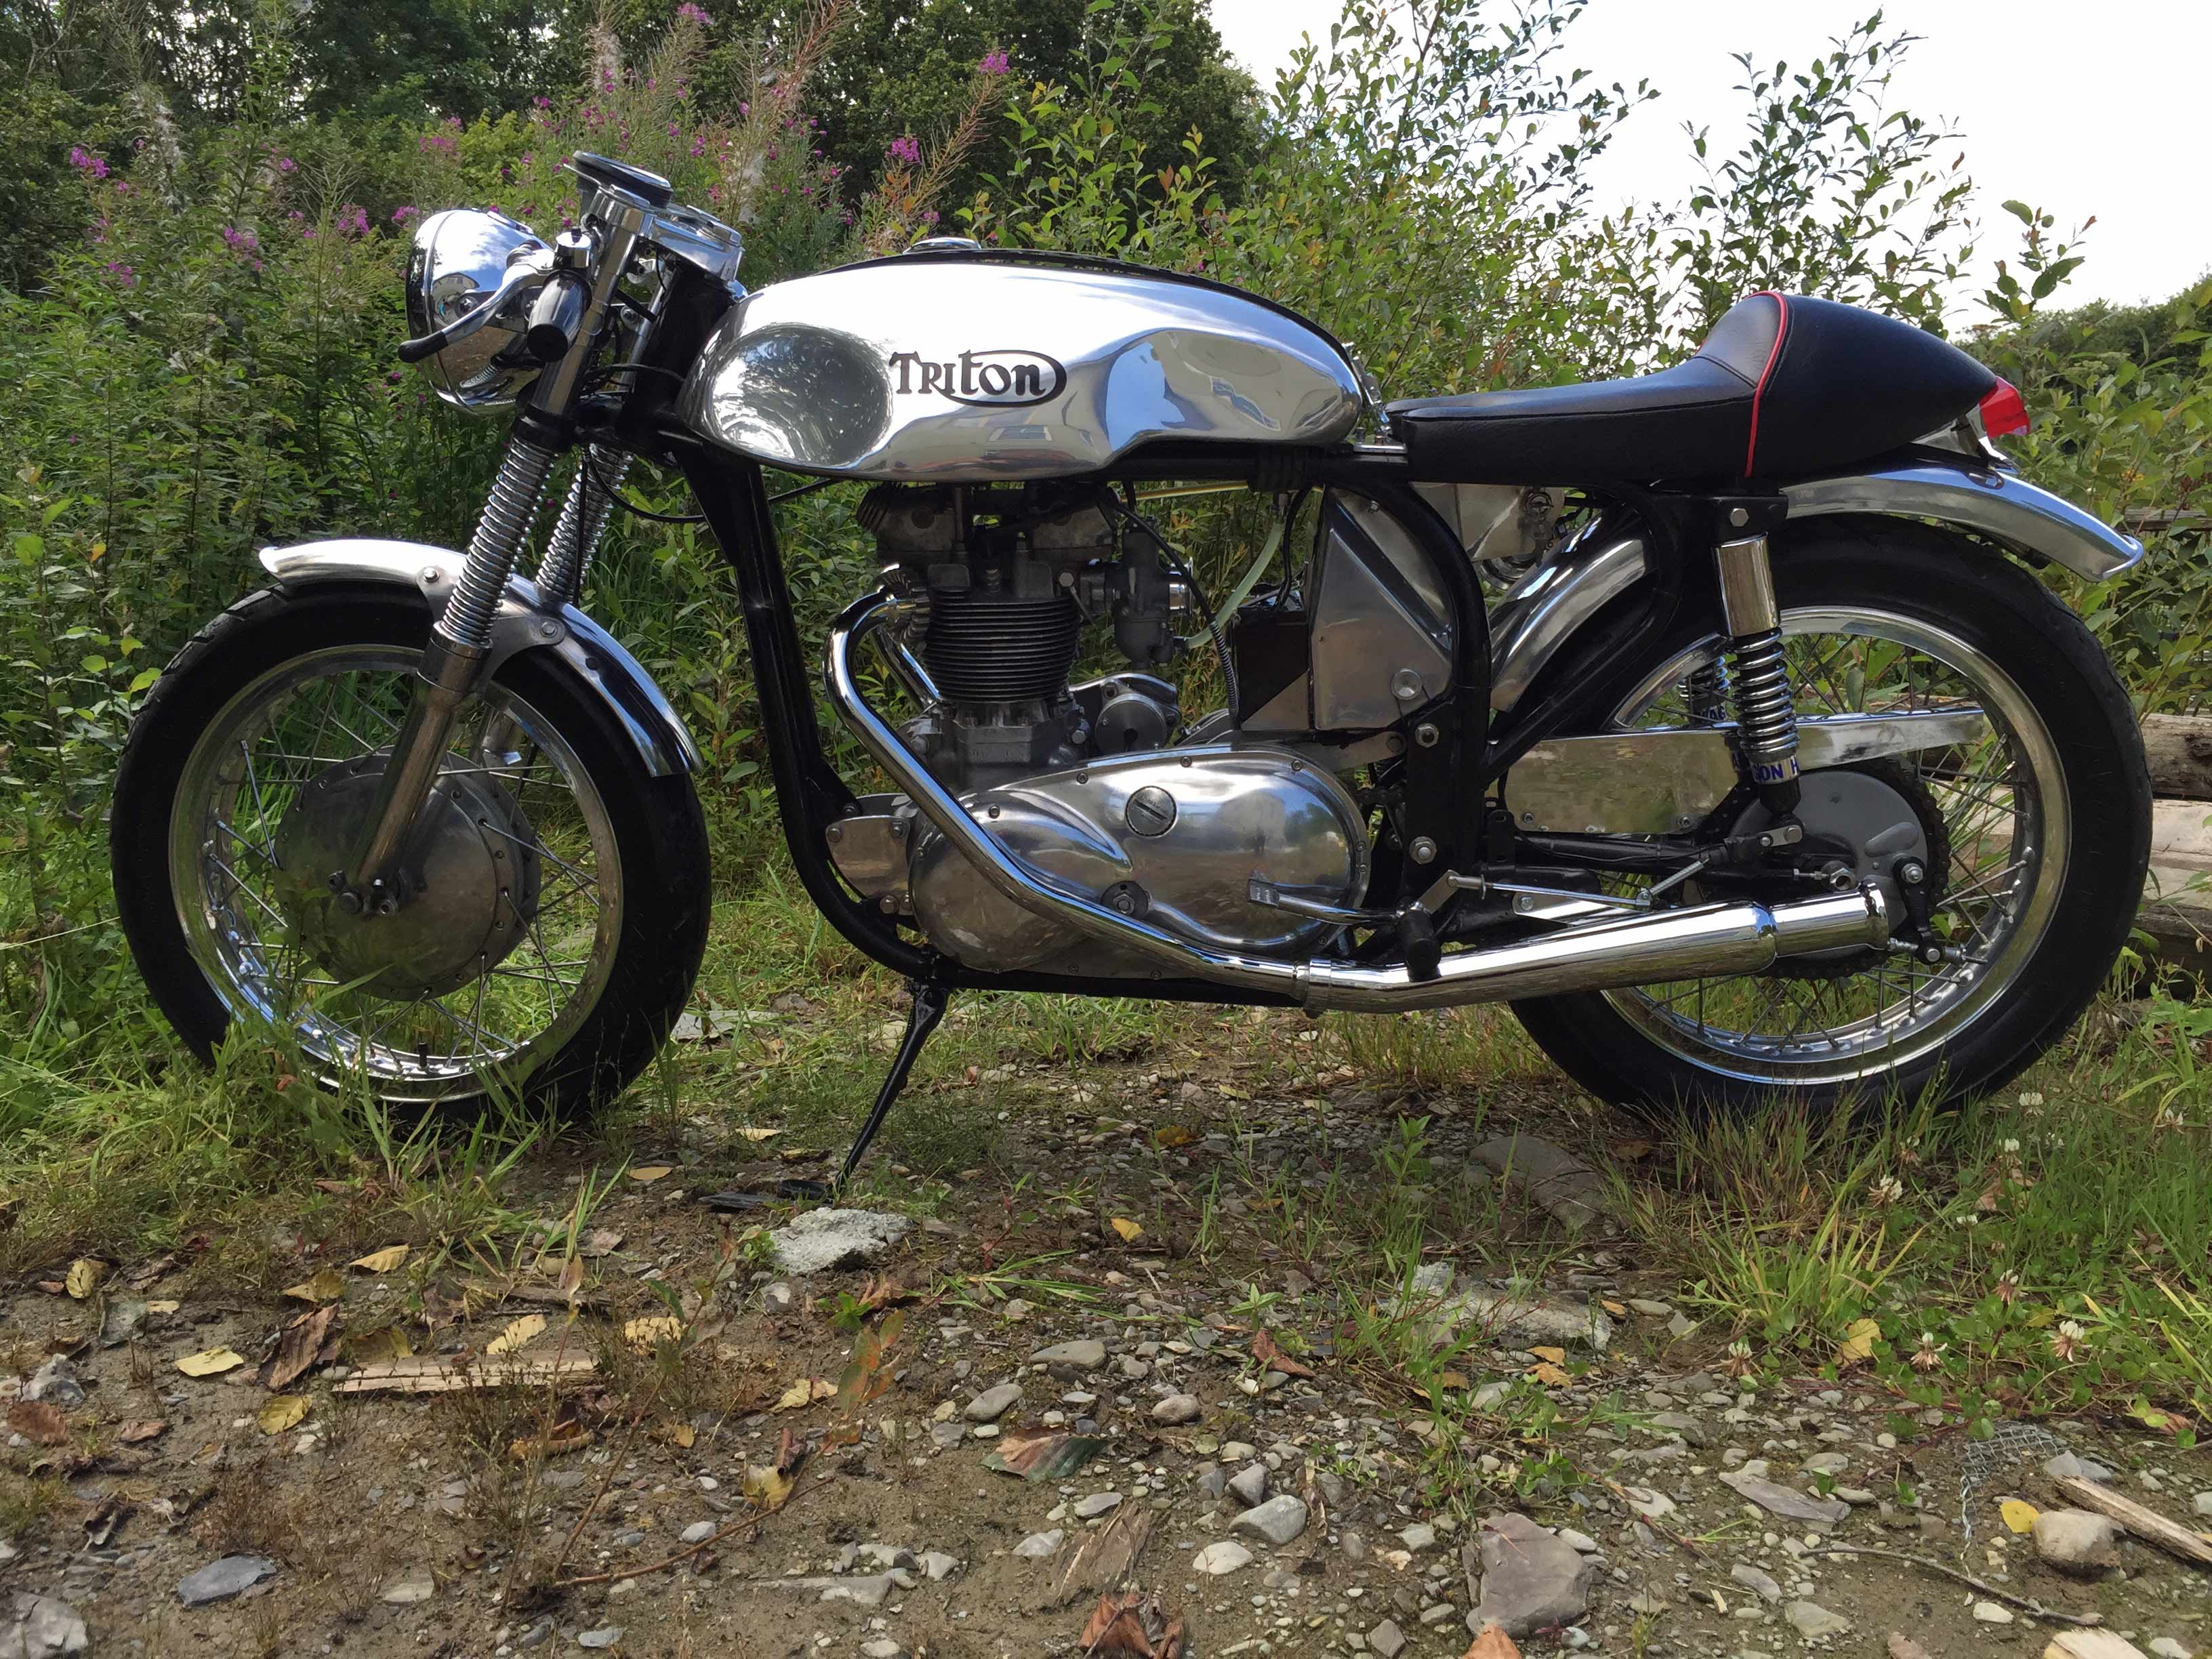 Triton 1964 Cafe Racer Waccy Restorations And Repairs